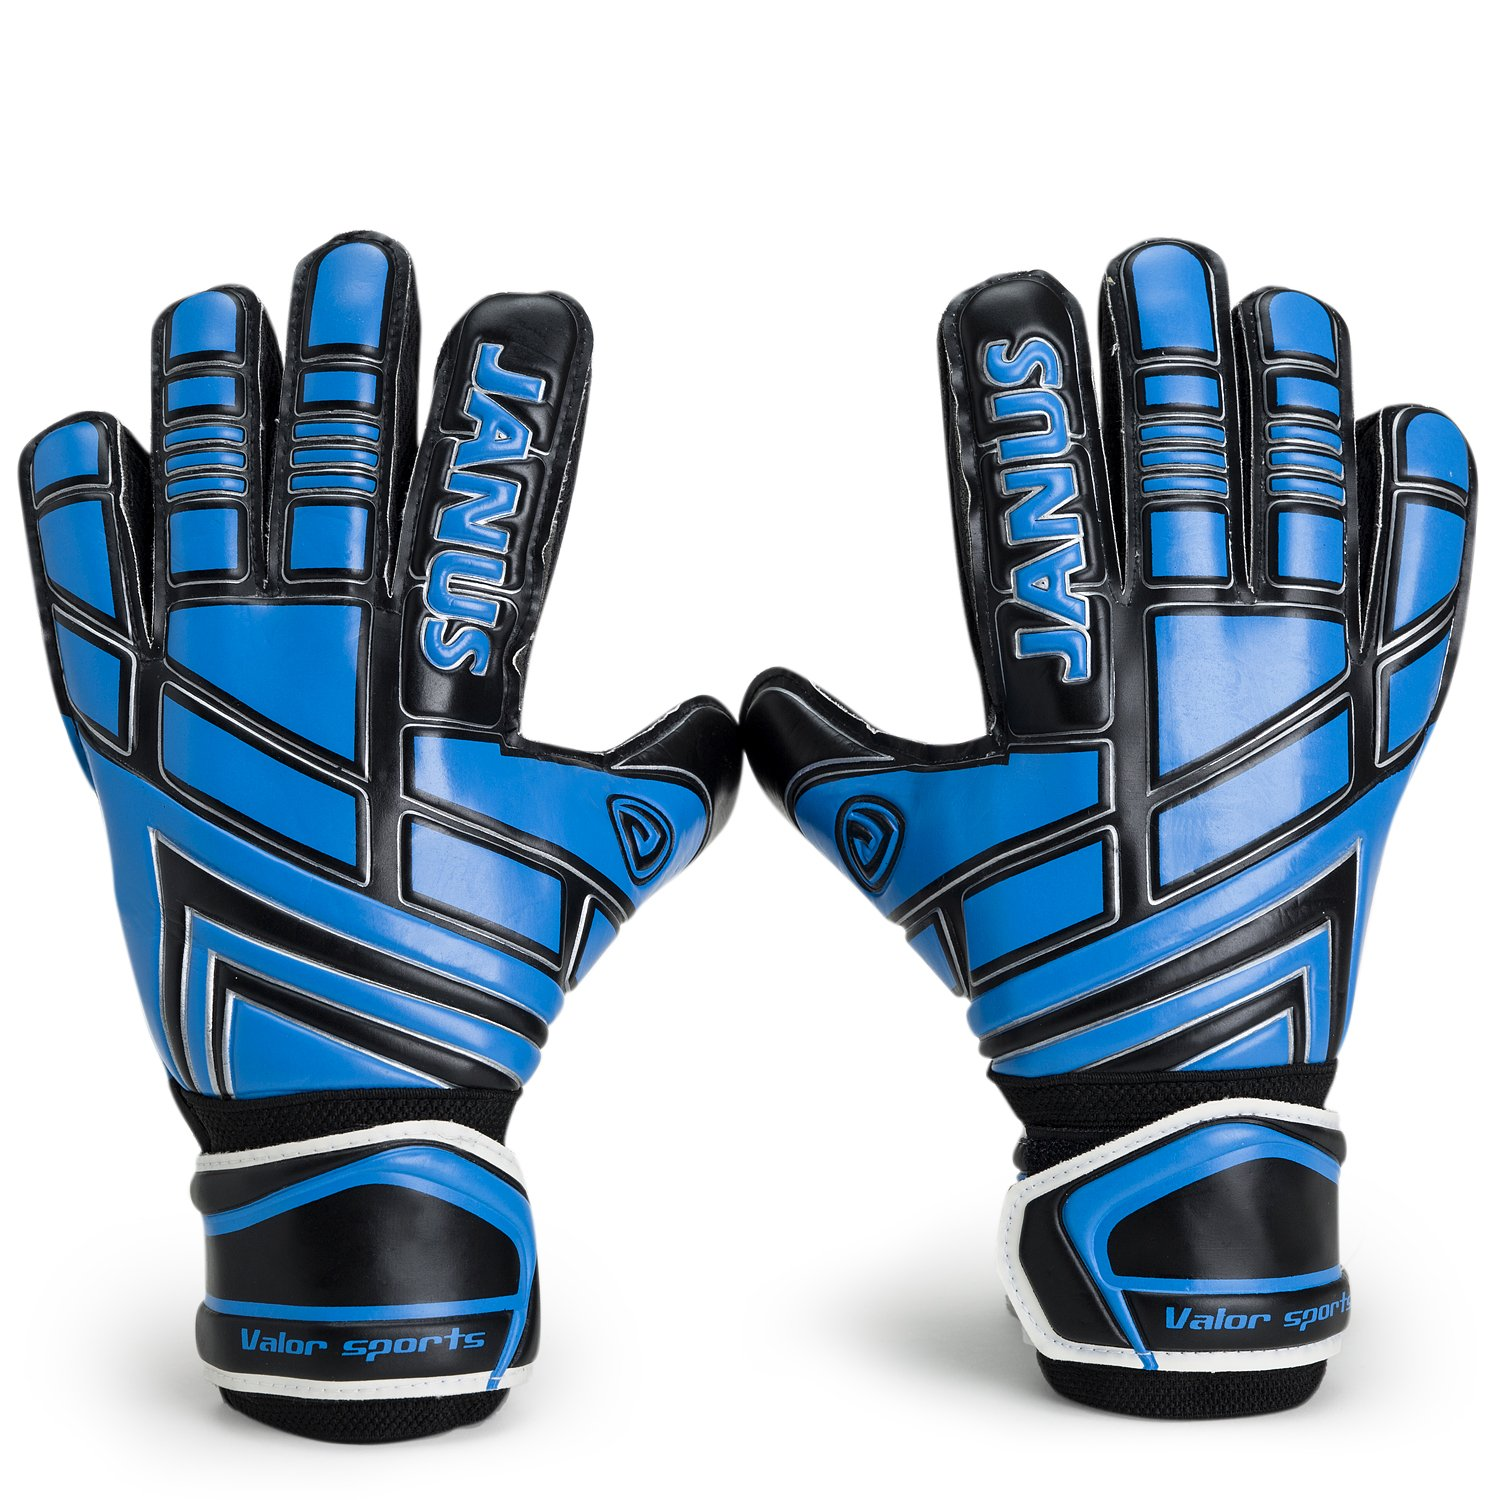 valorsports Youth &大人用Goalieゴールキーパーグローブ、強力なグリップfor the Toughest Saves、with Finger Spines to give Splendid保護ケガを防ぐて B073JPNT3K 9|BlackBlue BlackBlue 9